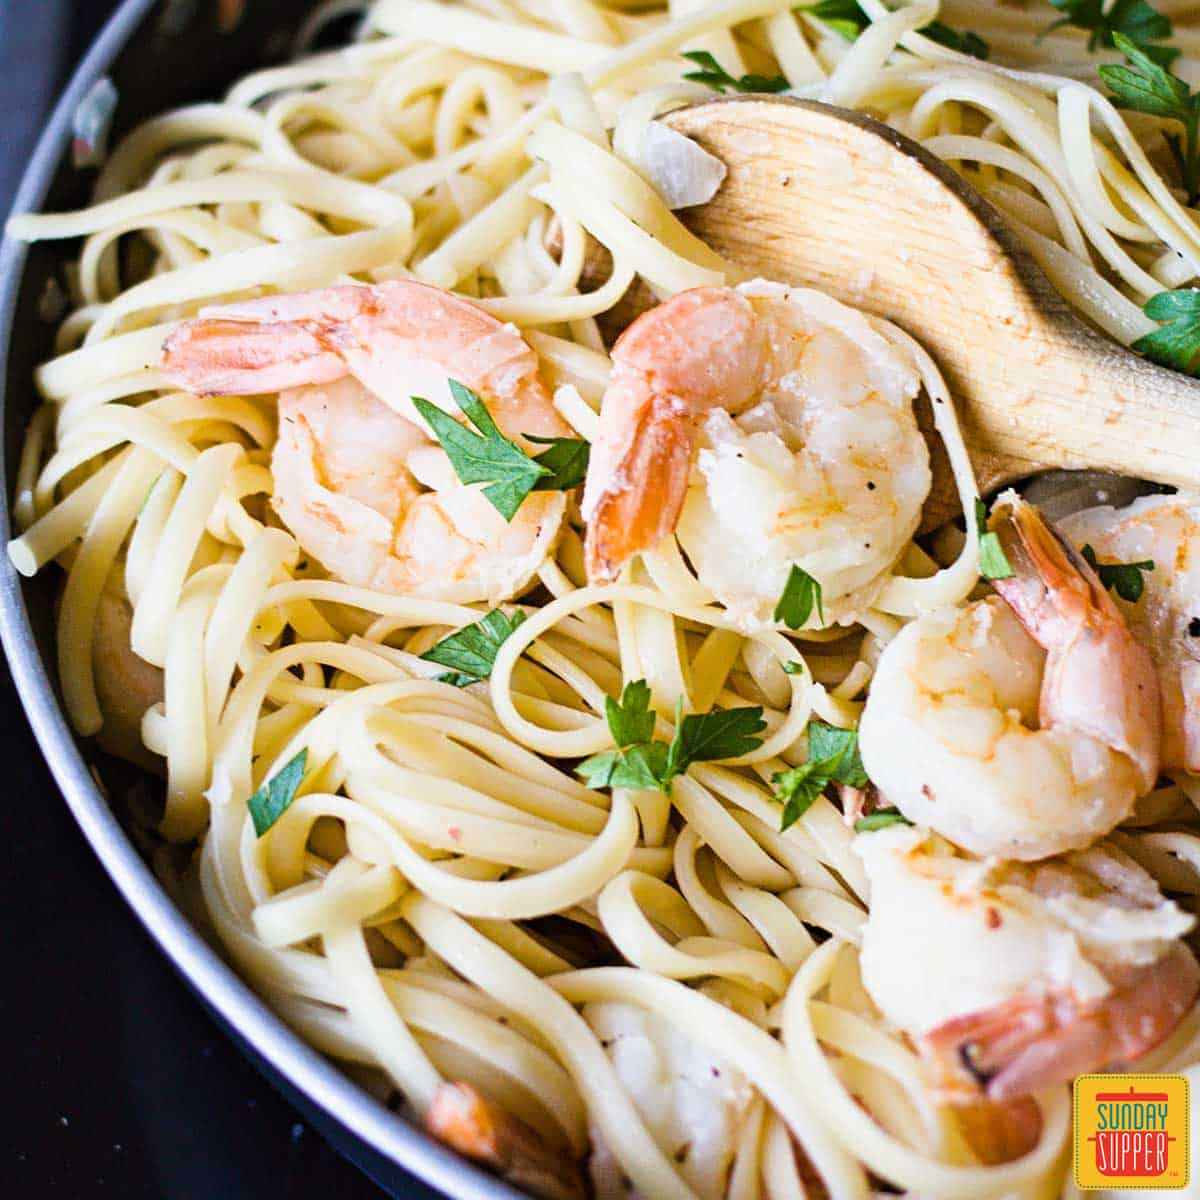 Shrimp scampi linguine in a skillet with a wooden spoon